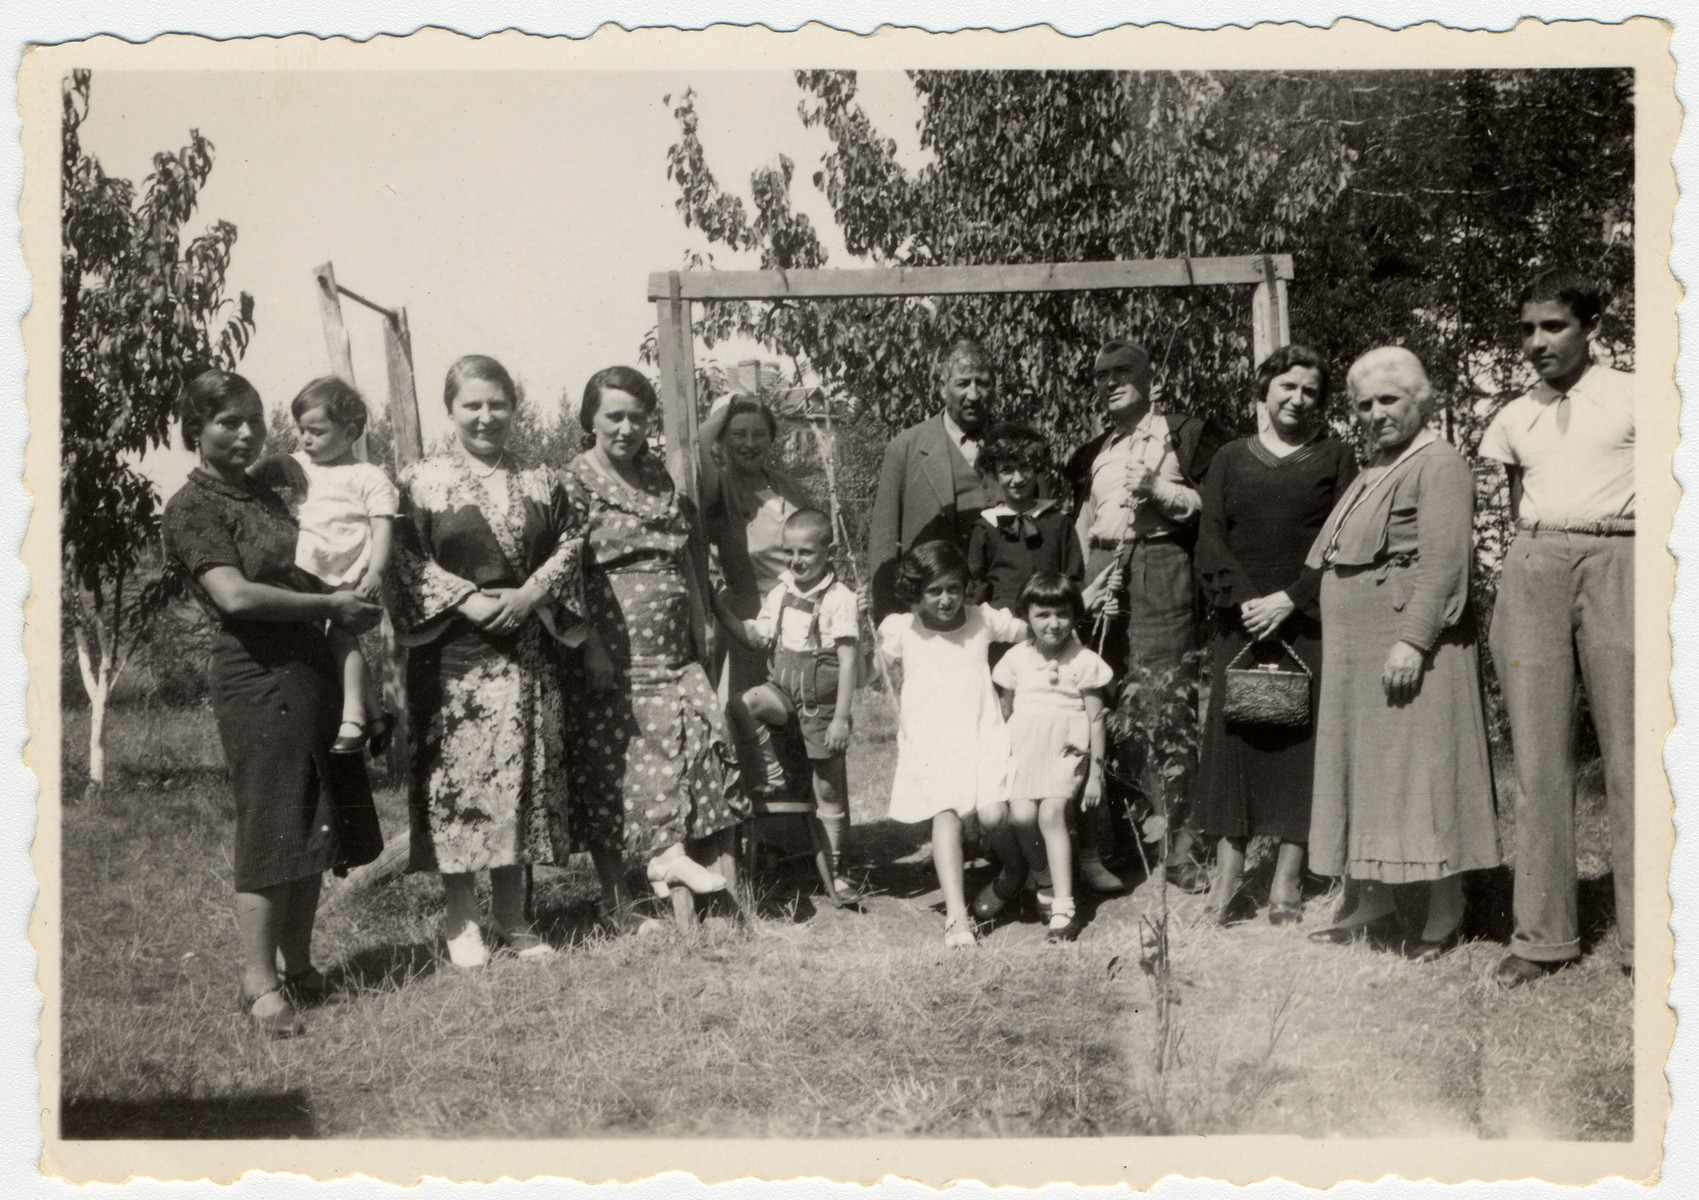 Picture of a large extended Bulgarian Jewish family at the Farhi's summer villa in Bankia, near Sofia.  Grandmother Luna (Farhi) Meranda is pictured second from the right.  Albert Farhi is in the center, next to the swing.  Moise is held by the family's housekeeper.